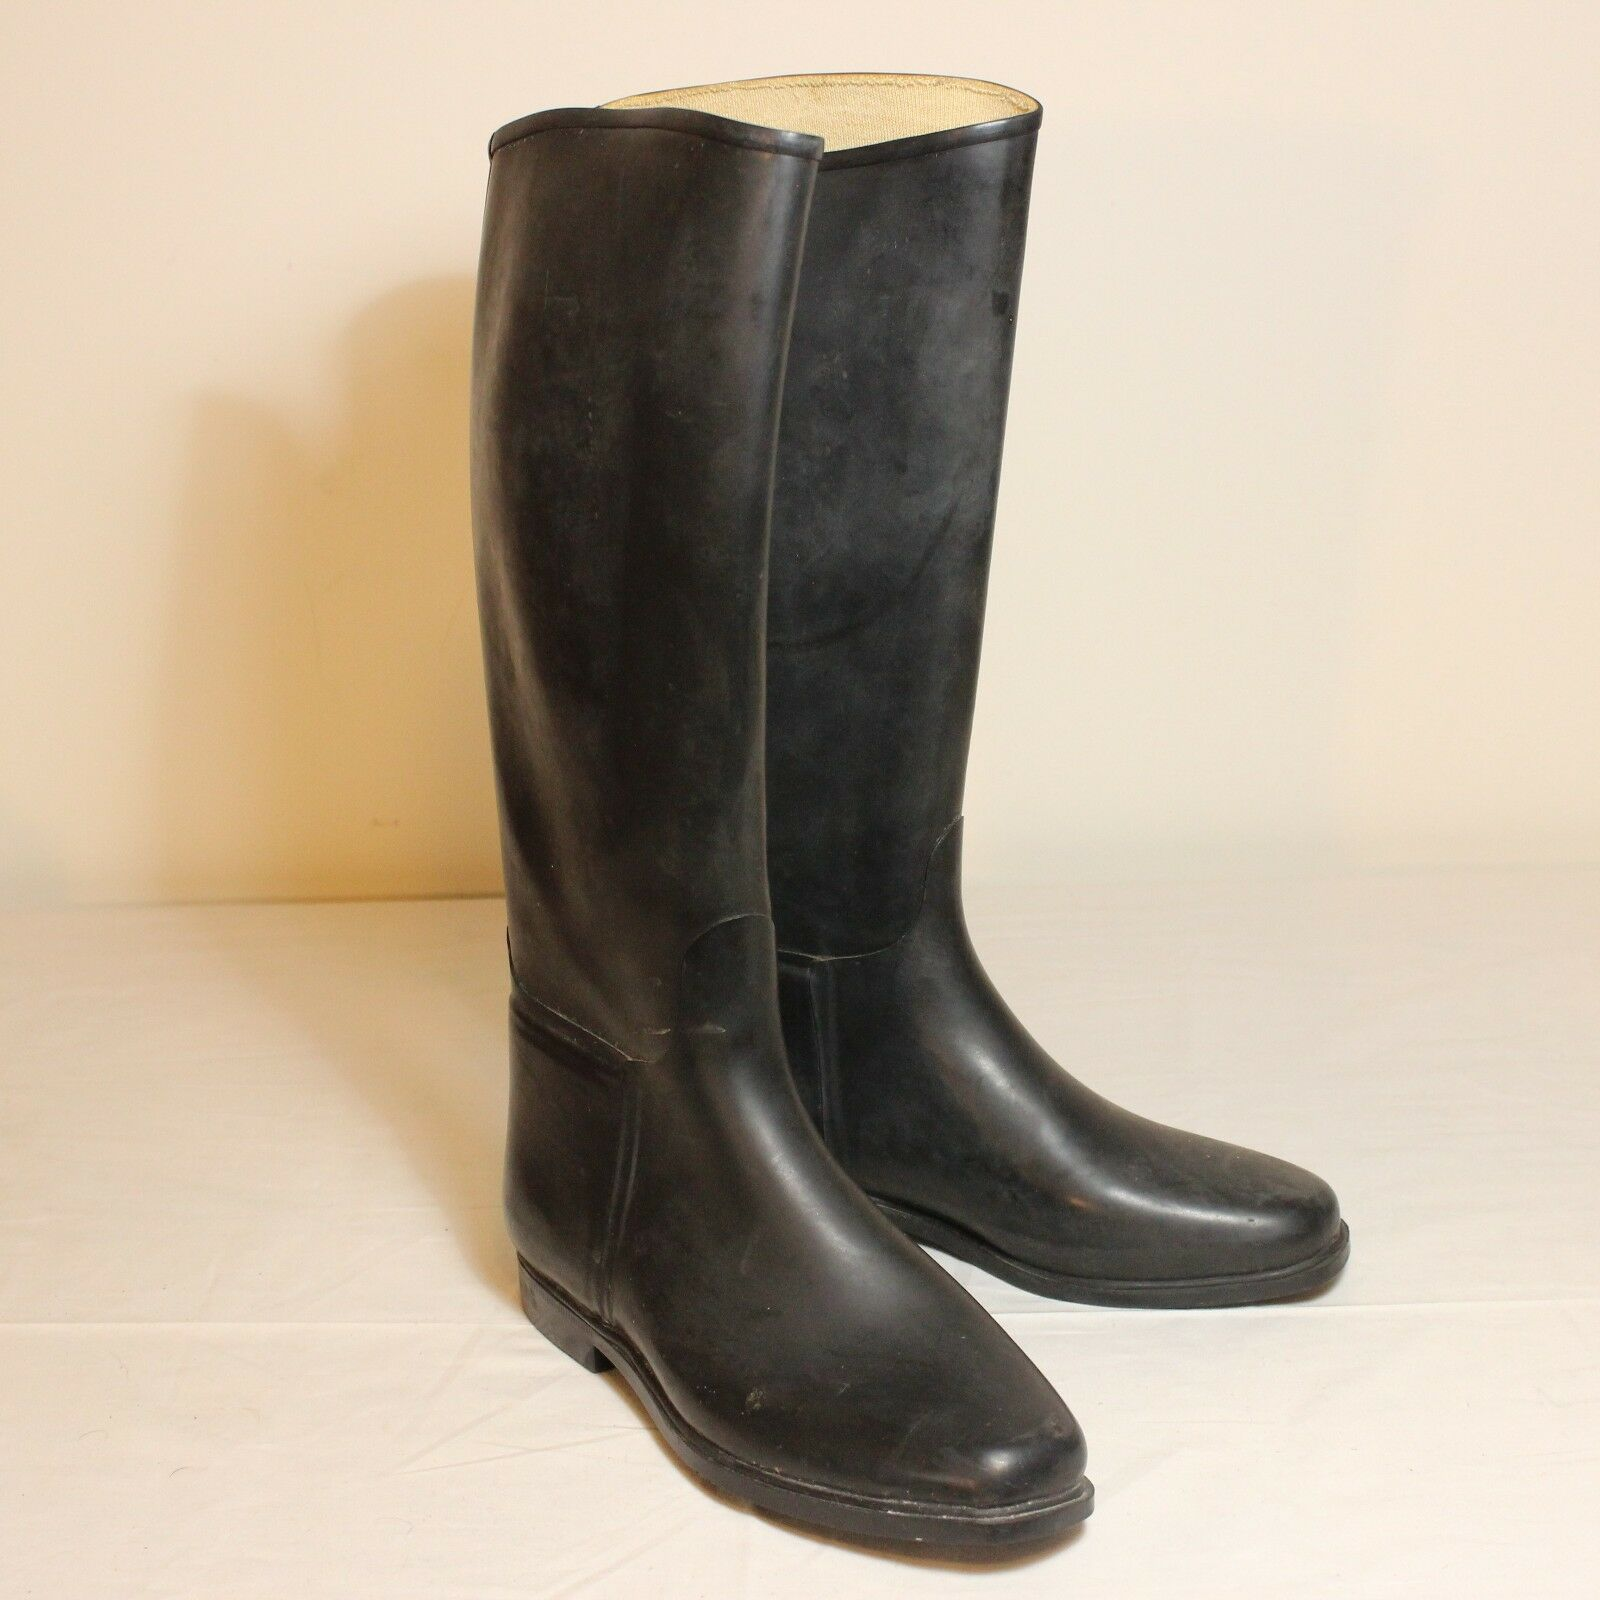 ROMIKA TURF Rubber  Equestrian Riding Boots Women's US 4.5 W. Germany VTG  order online